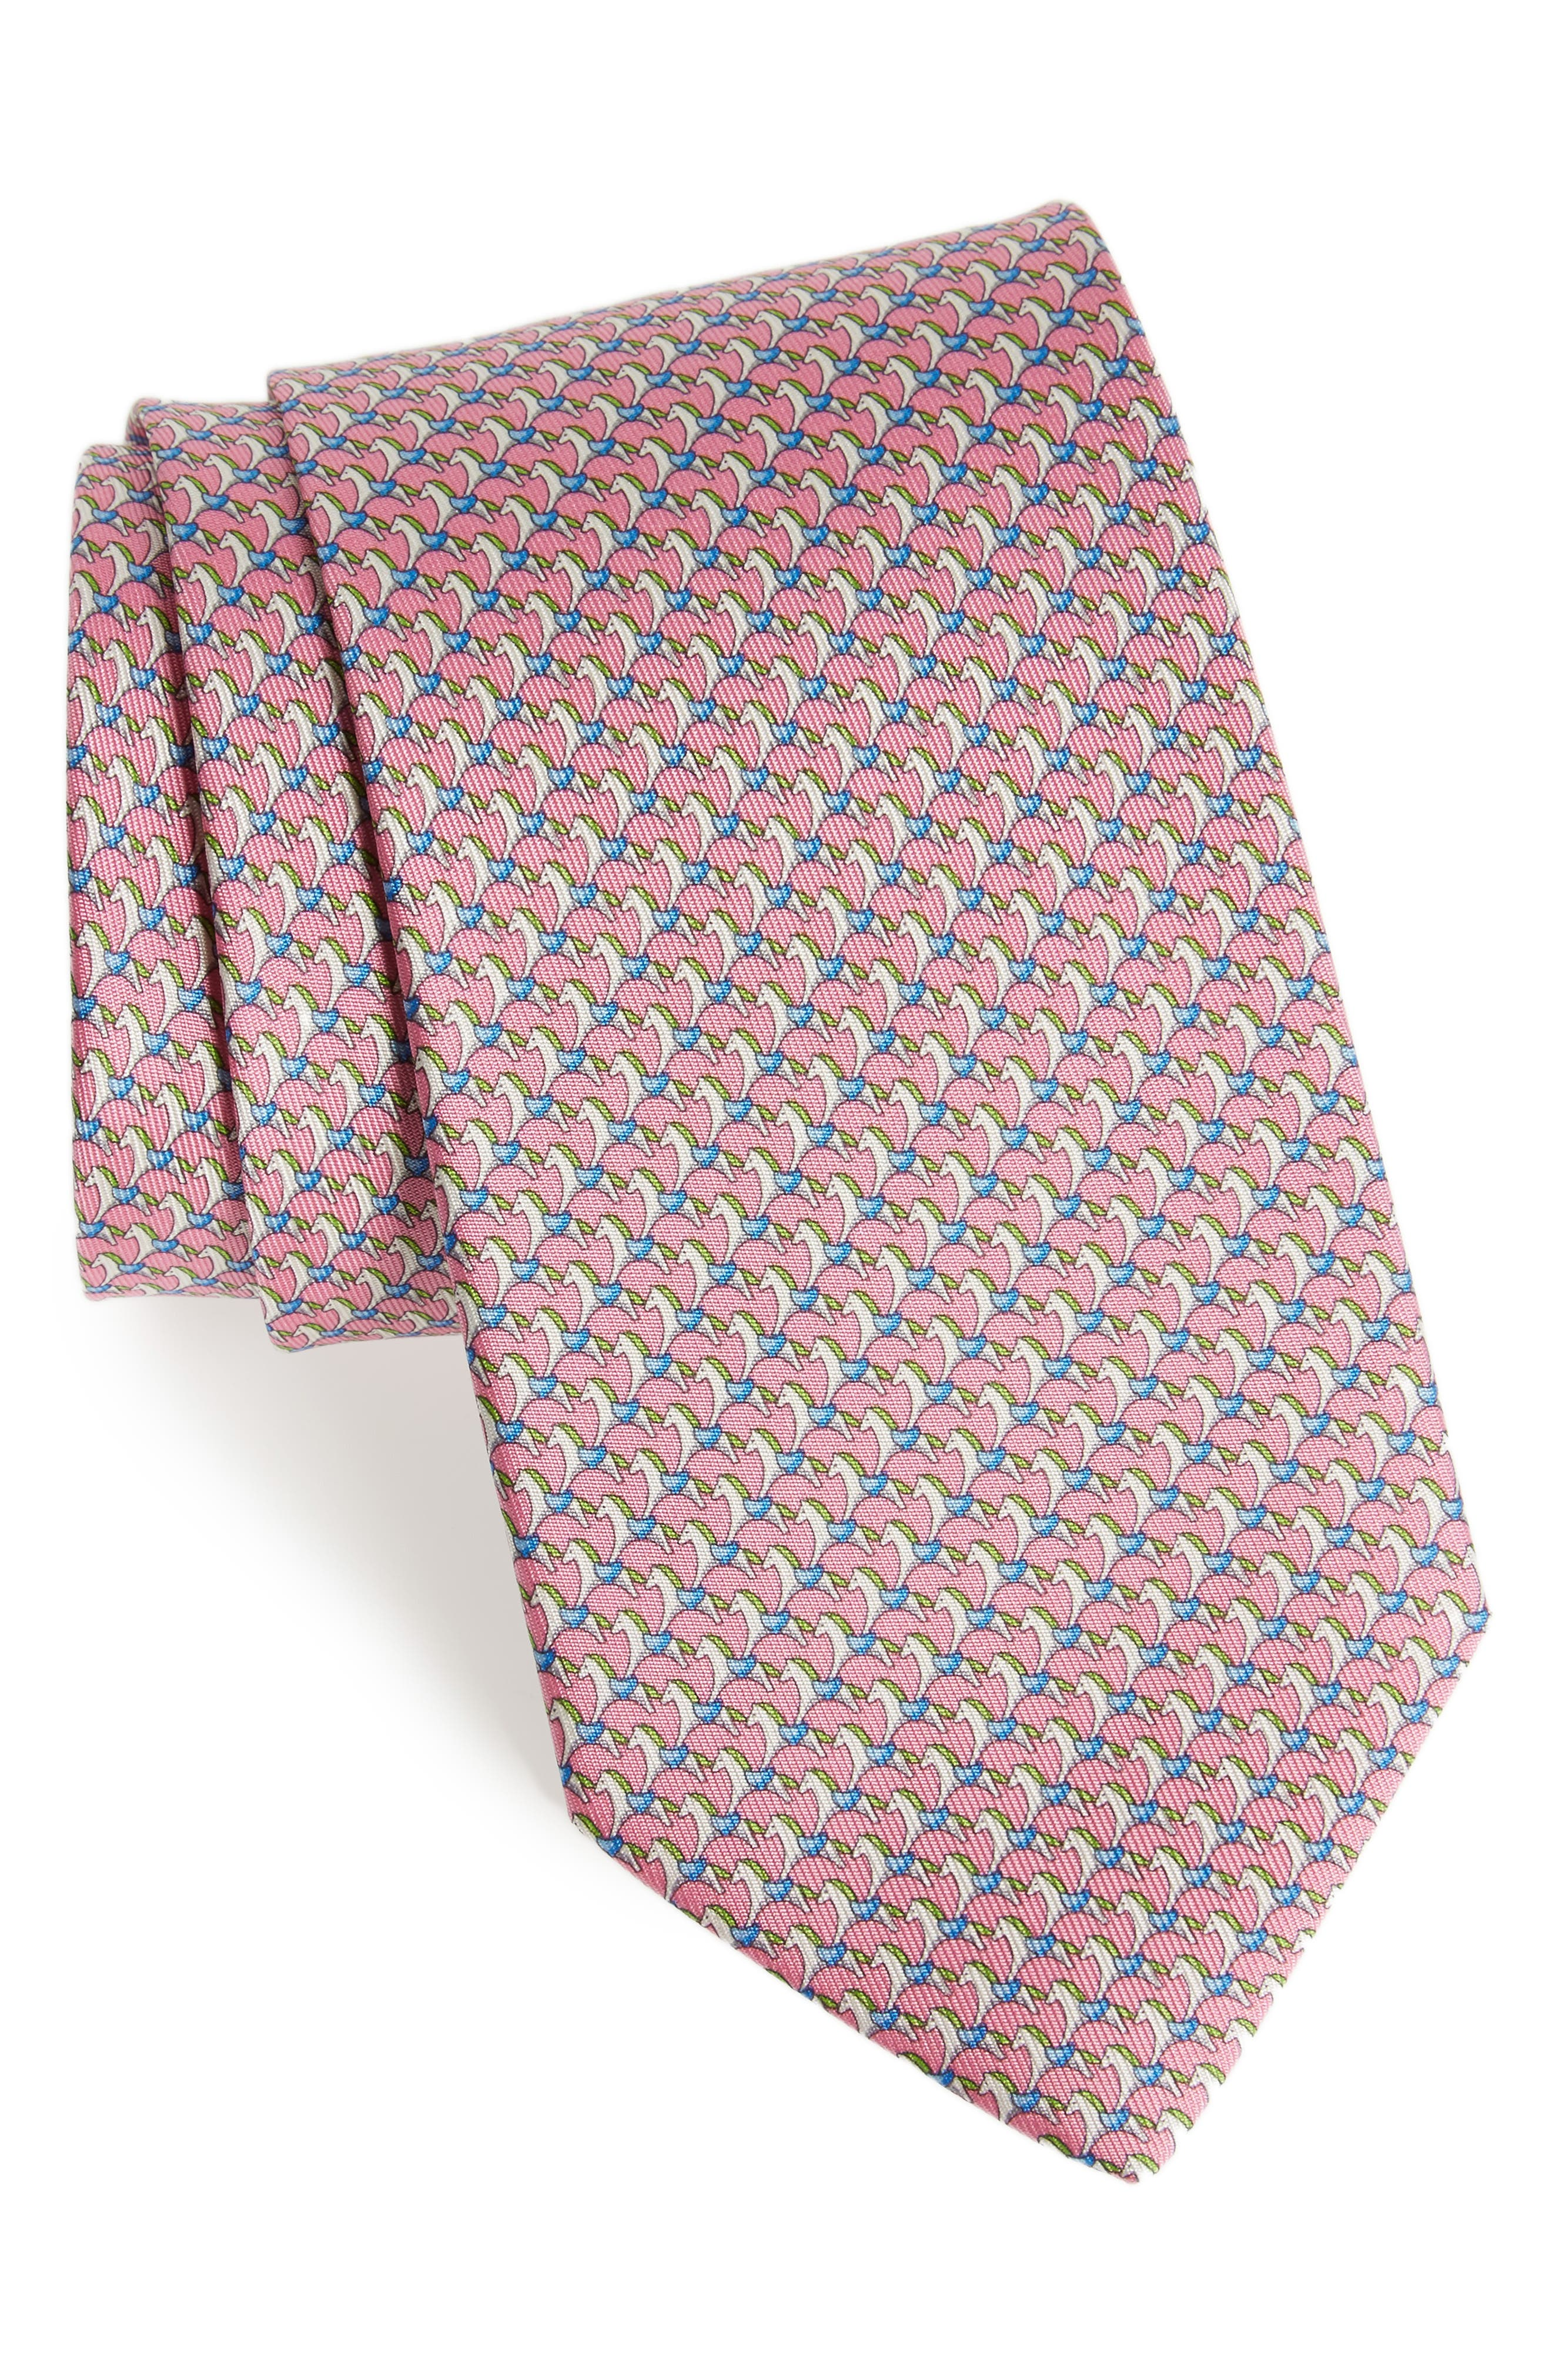 Edwin Print Silk Tie,                             Main thumbnail 1, color,                             Pink